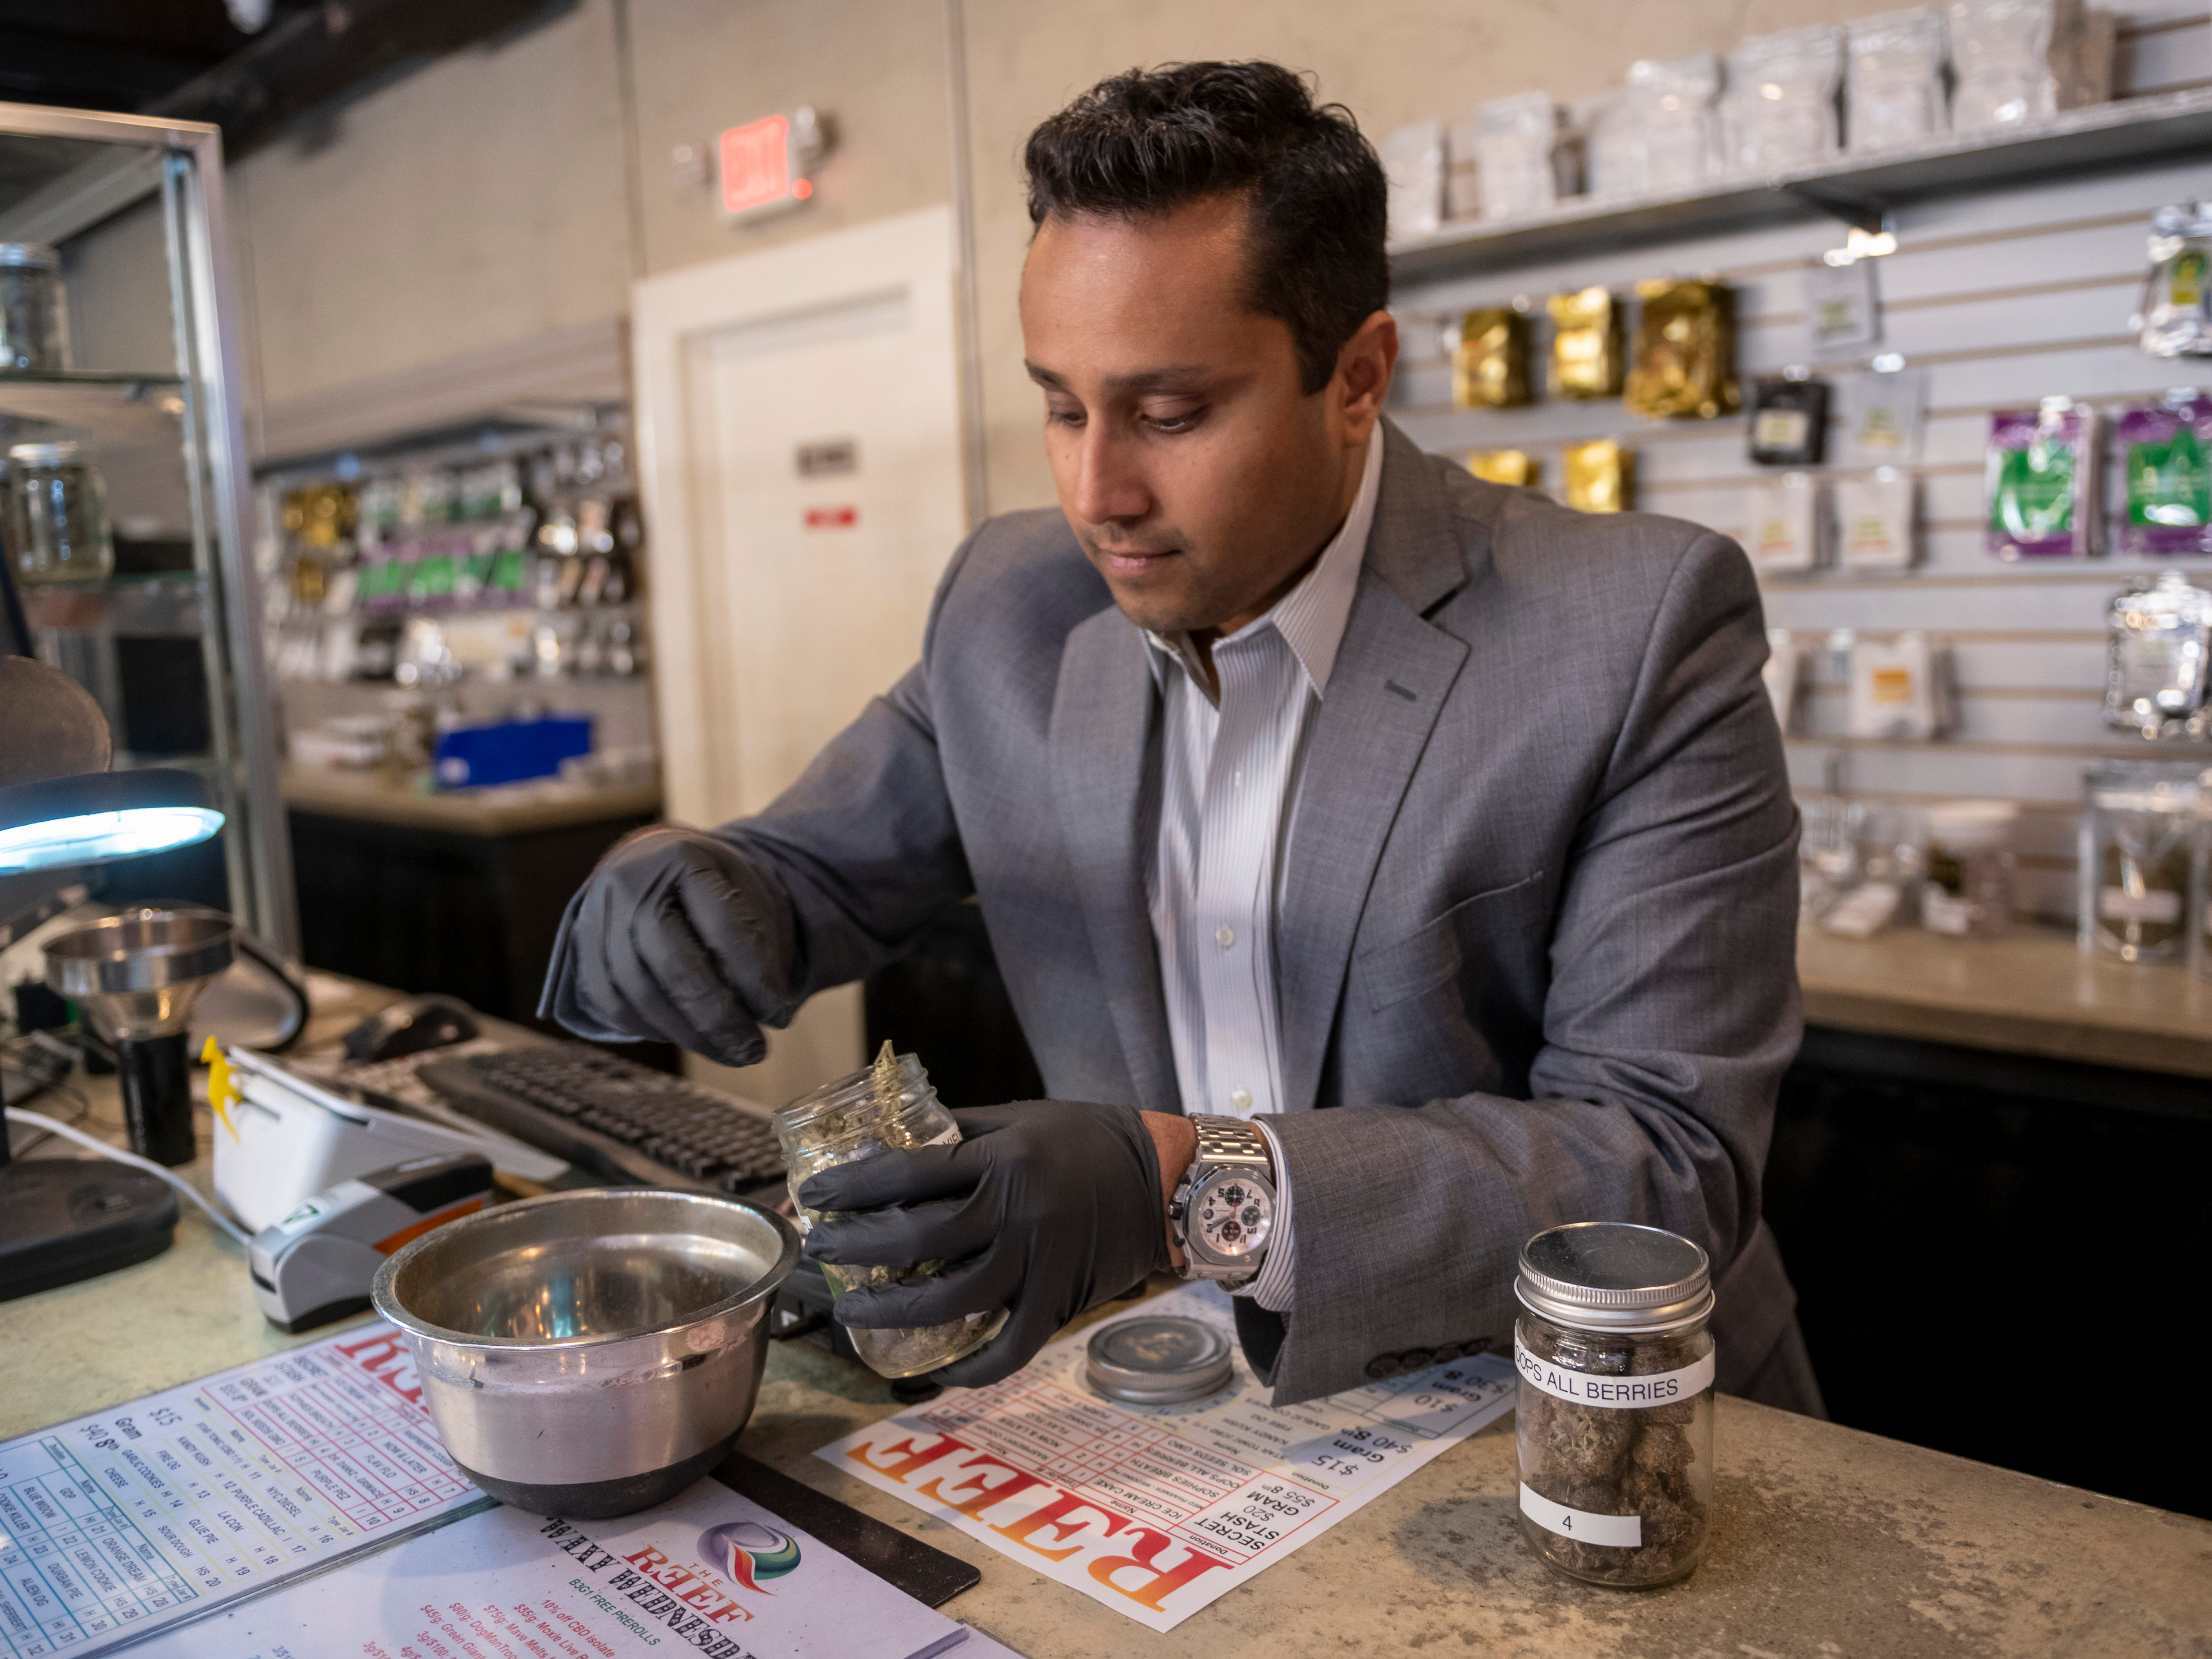 """""""We want to move the industry forward,"""" said Rush Hasan, head of The Reef's operations and business development. """" We want to show good things can be done by a marijuana company."""""""